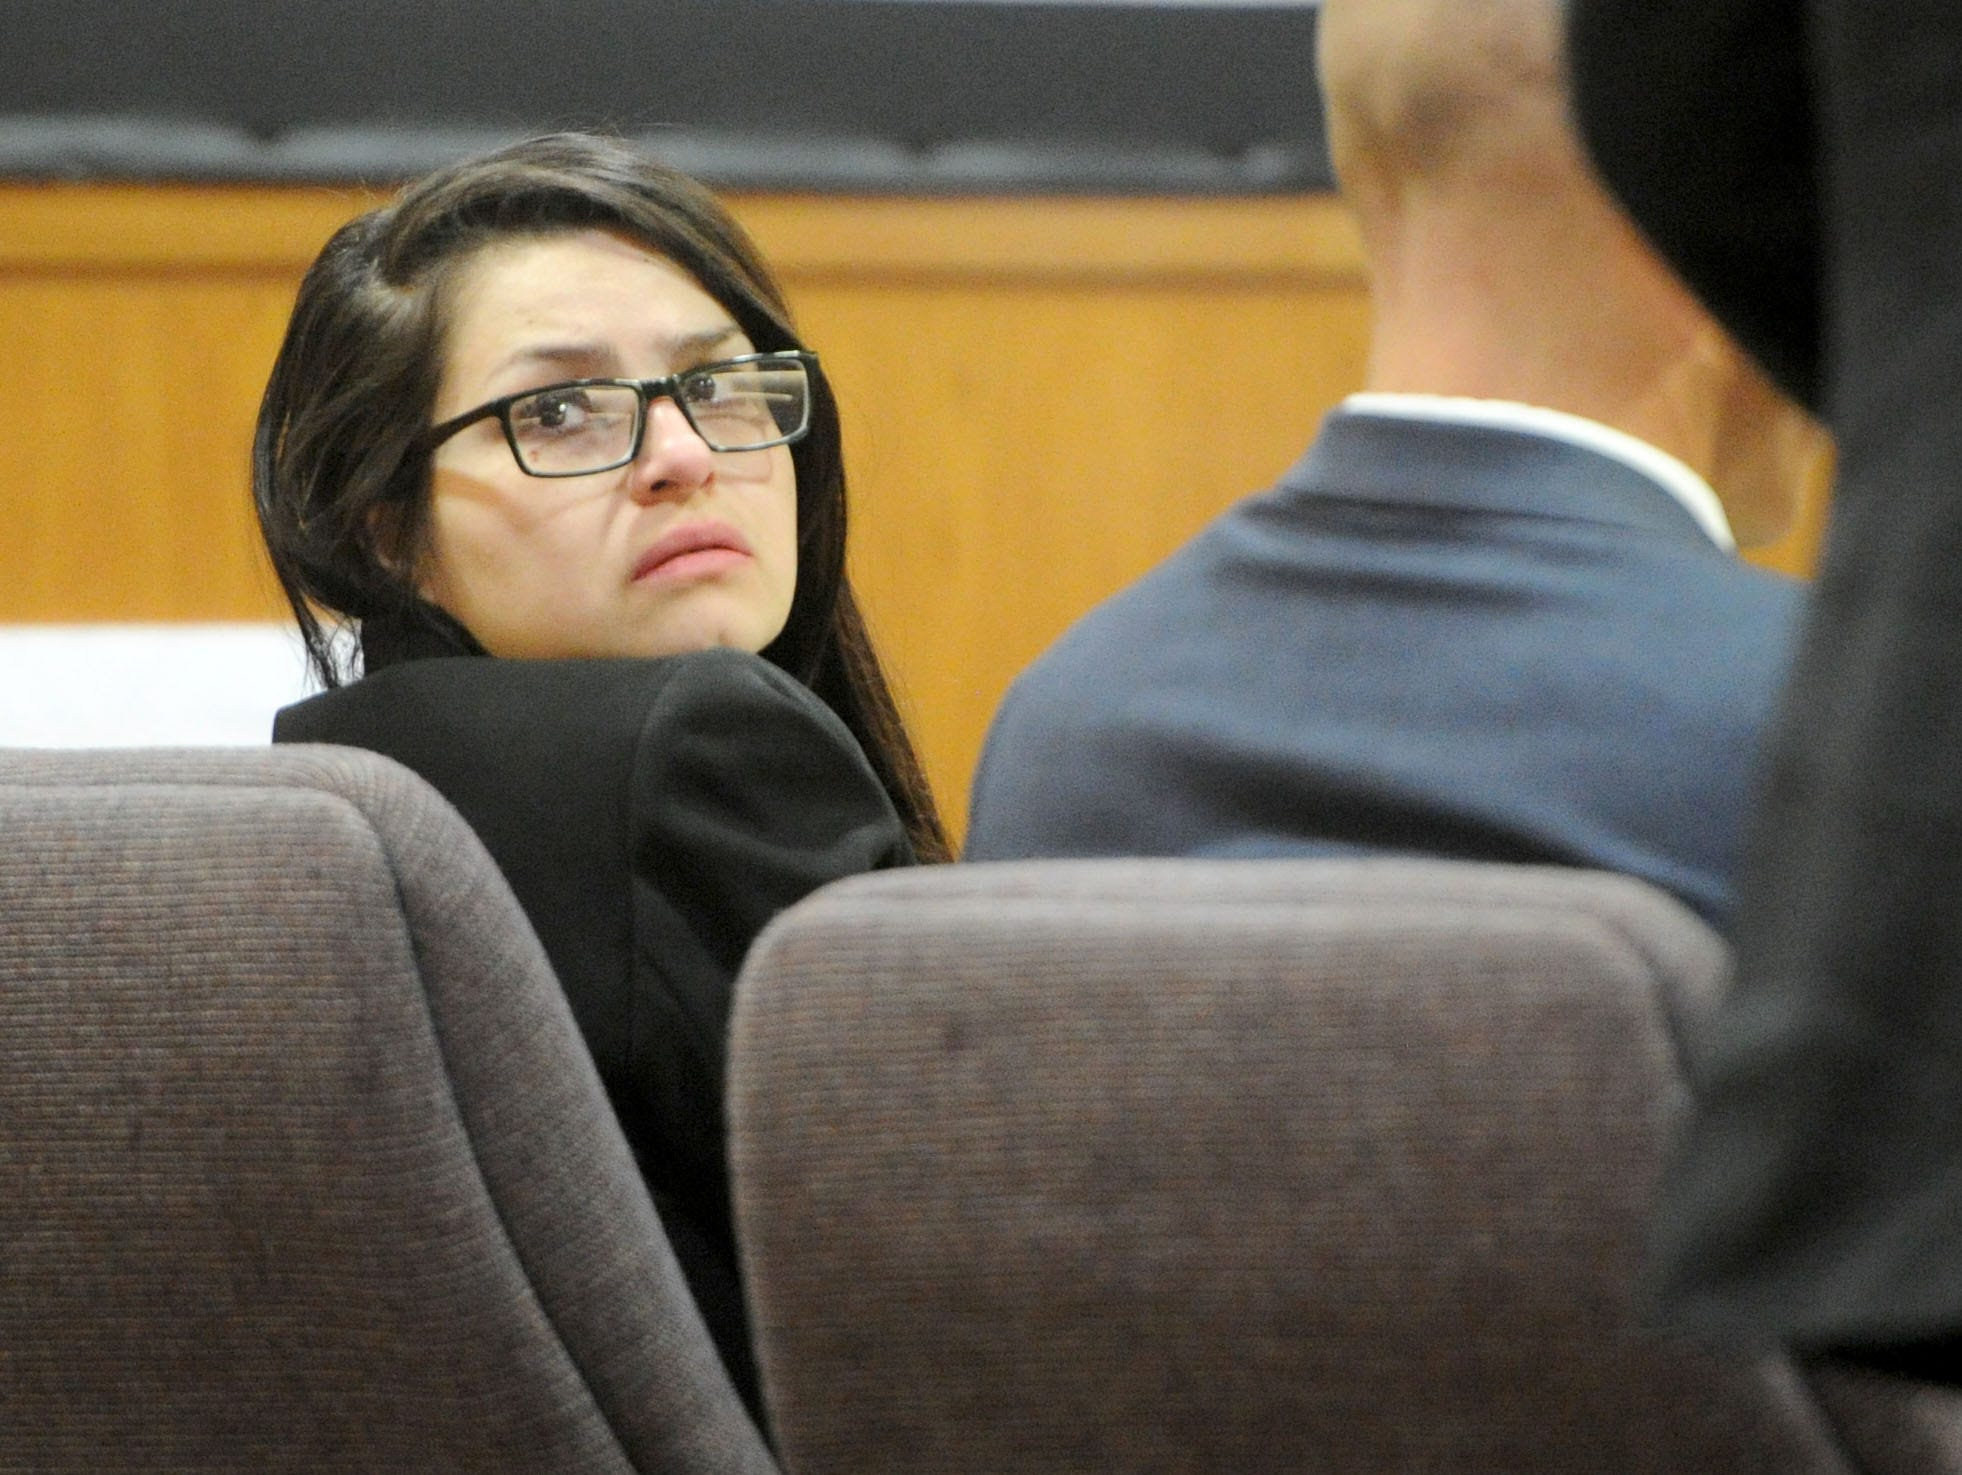 Mayra Chavez looks over her shoulder Tuesday as a witness steps forward at her trial in Ventura County Superior Court. She is accused of killing her 3-year-old daughter Kimberly Lopez who authorities believe to be dead somewhere in Mexico.